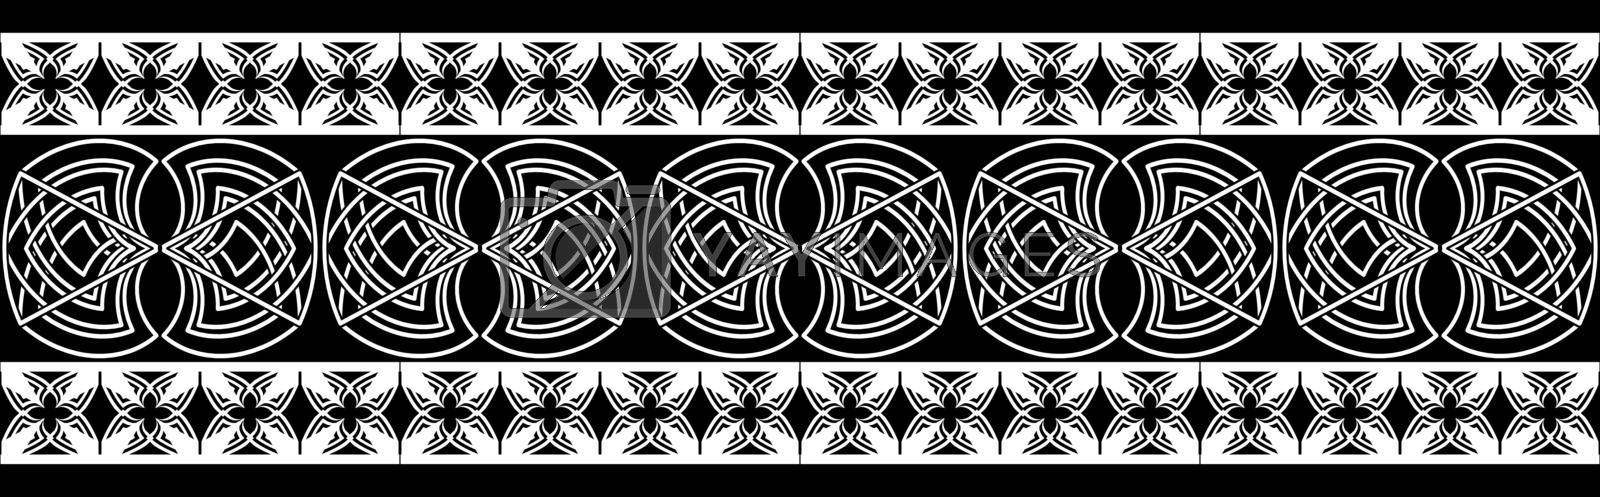 Black and white seamless ornament in old scandinavian or celtic style